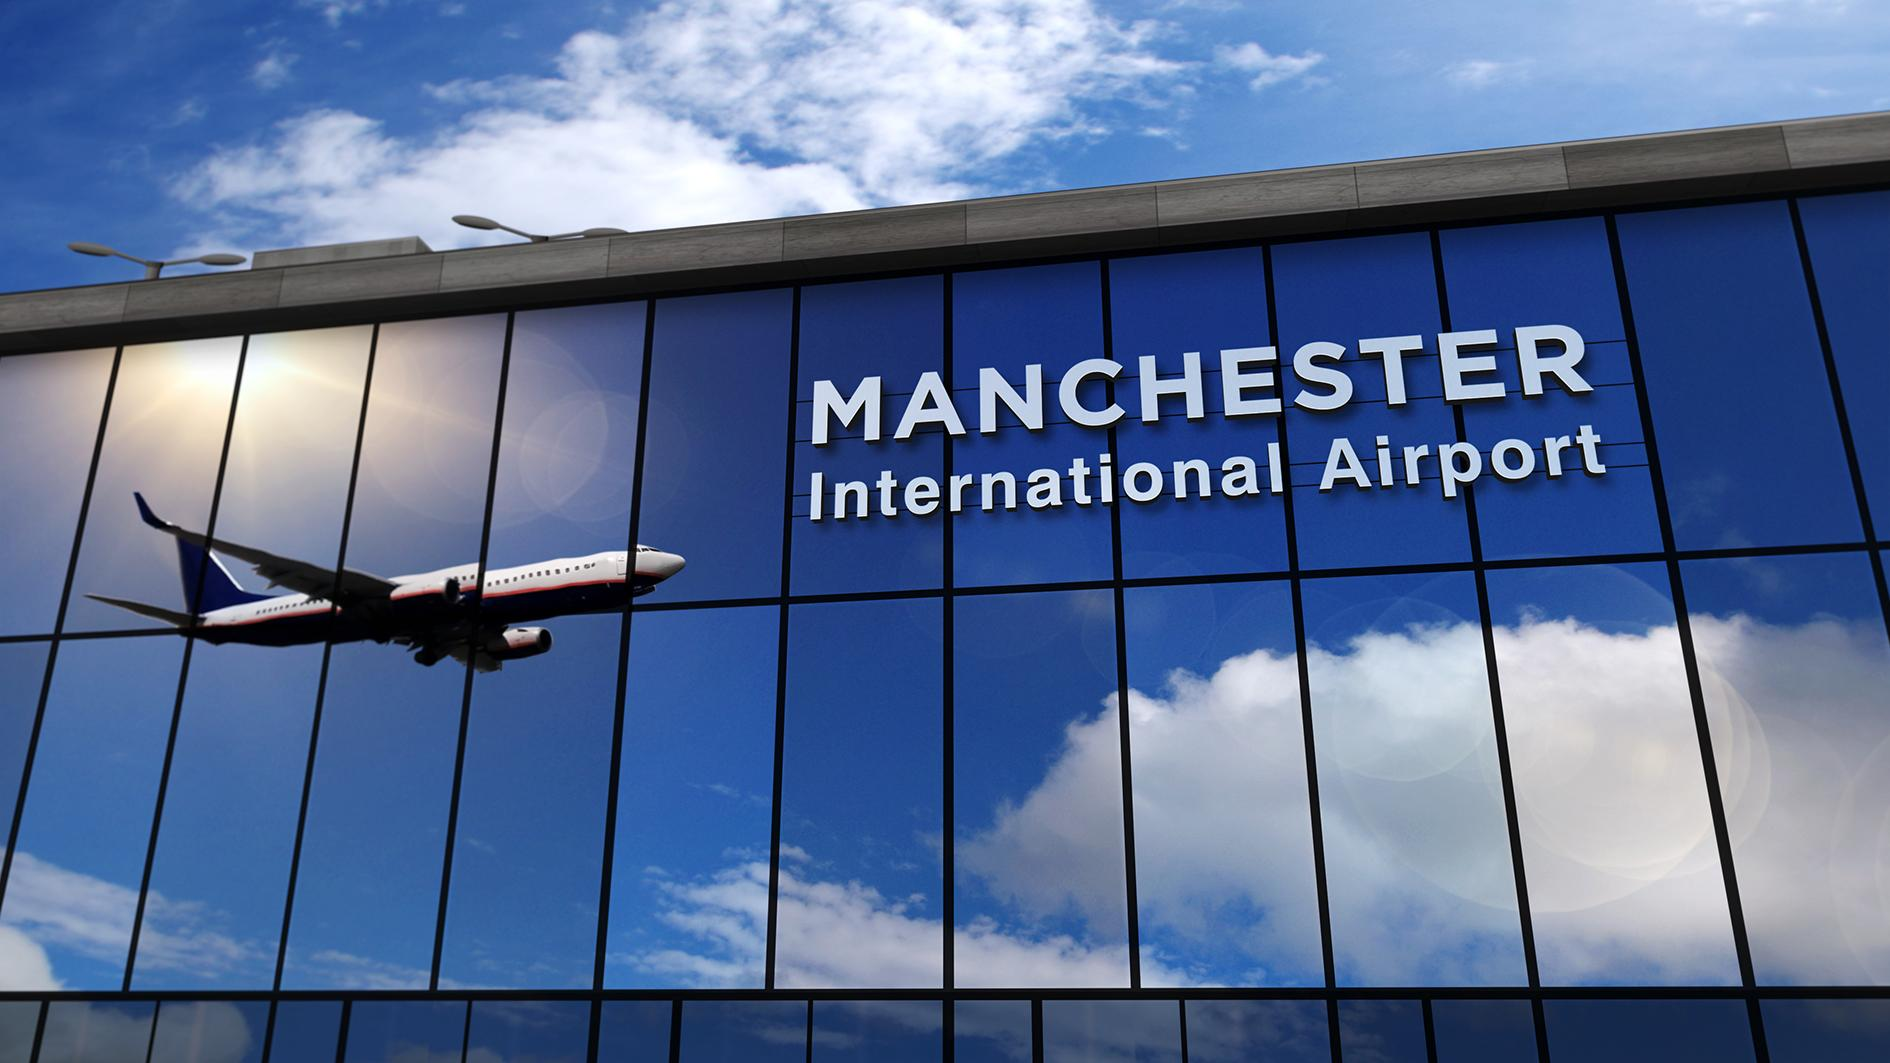 PTSG flies back to Manchester Airport